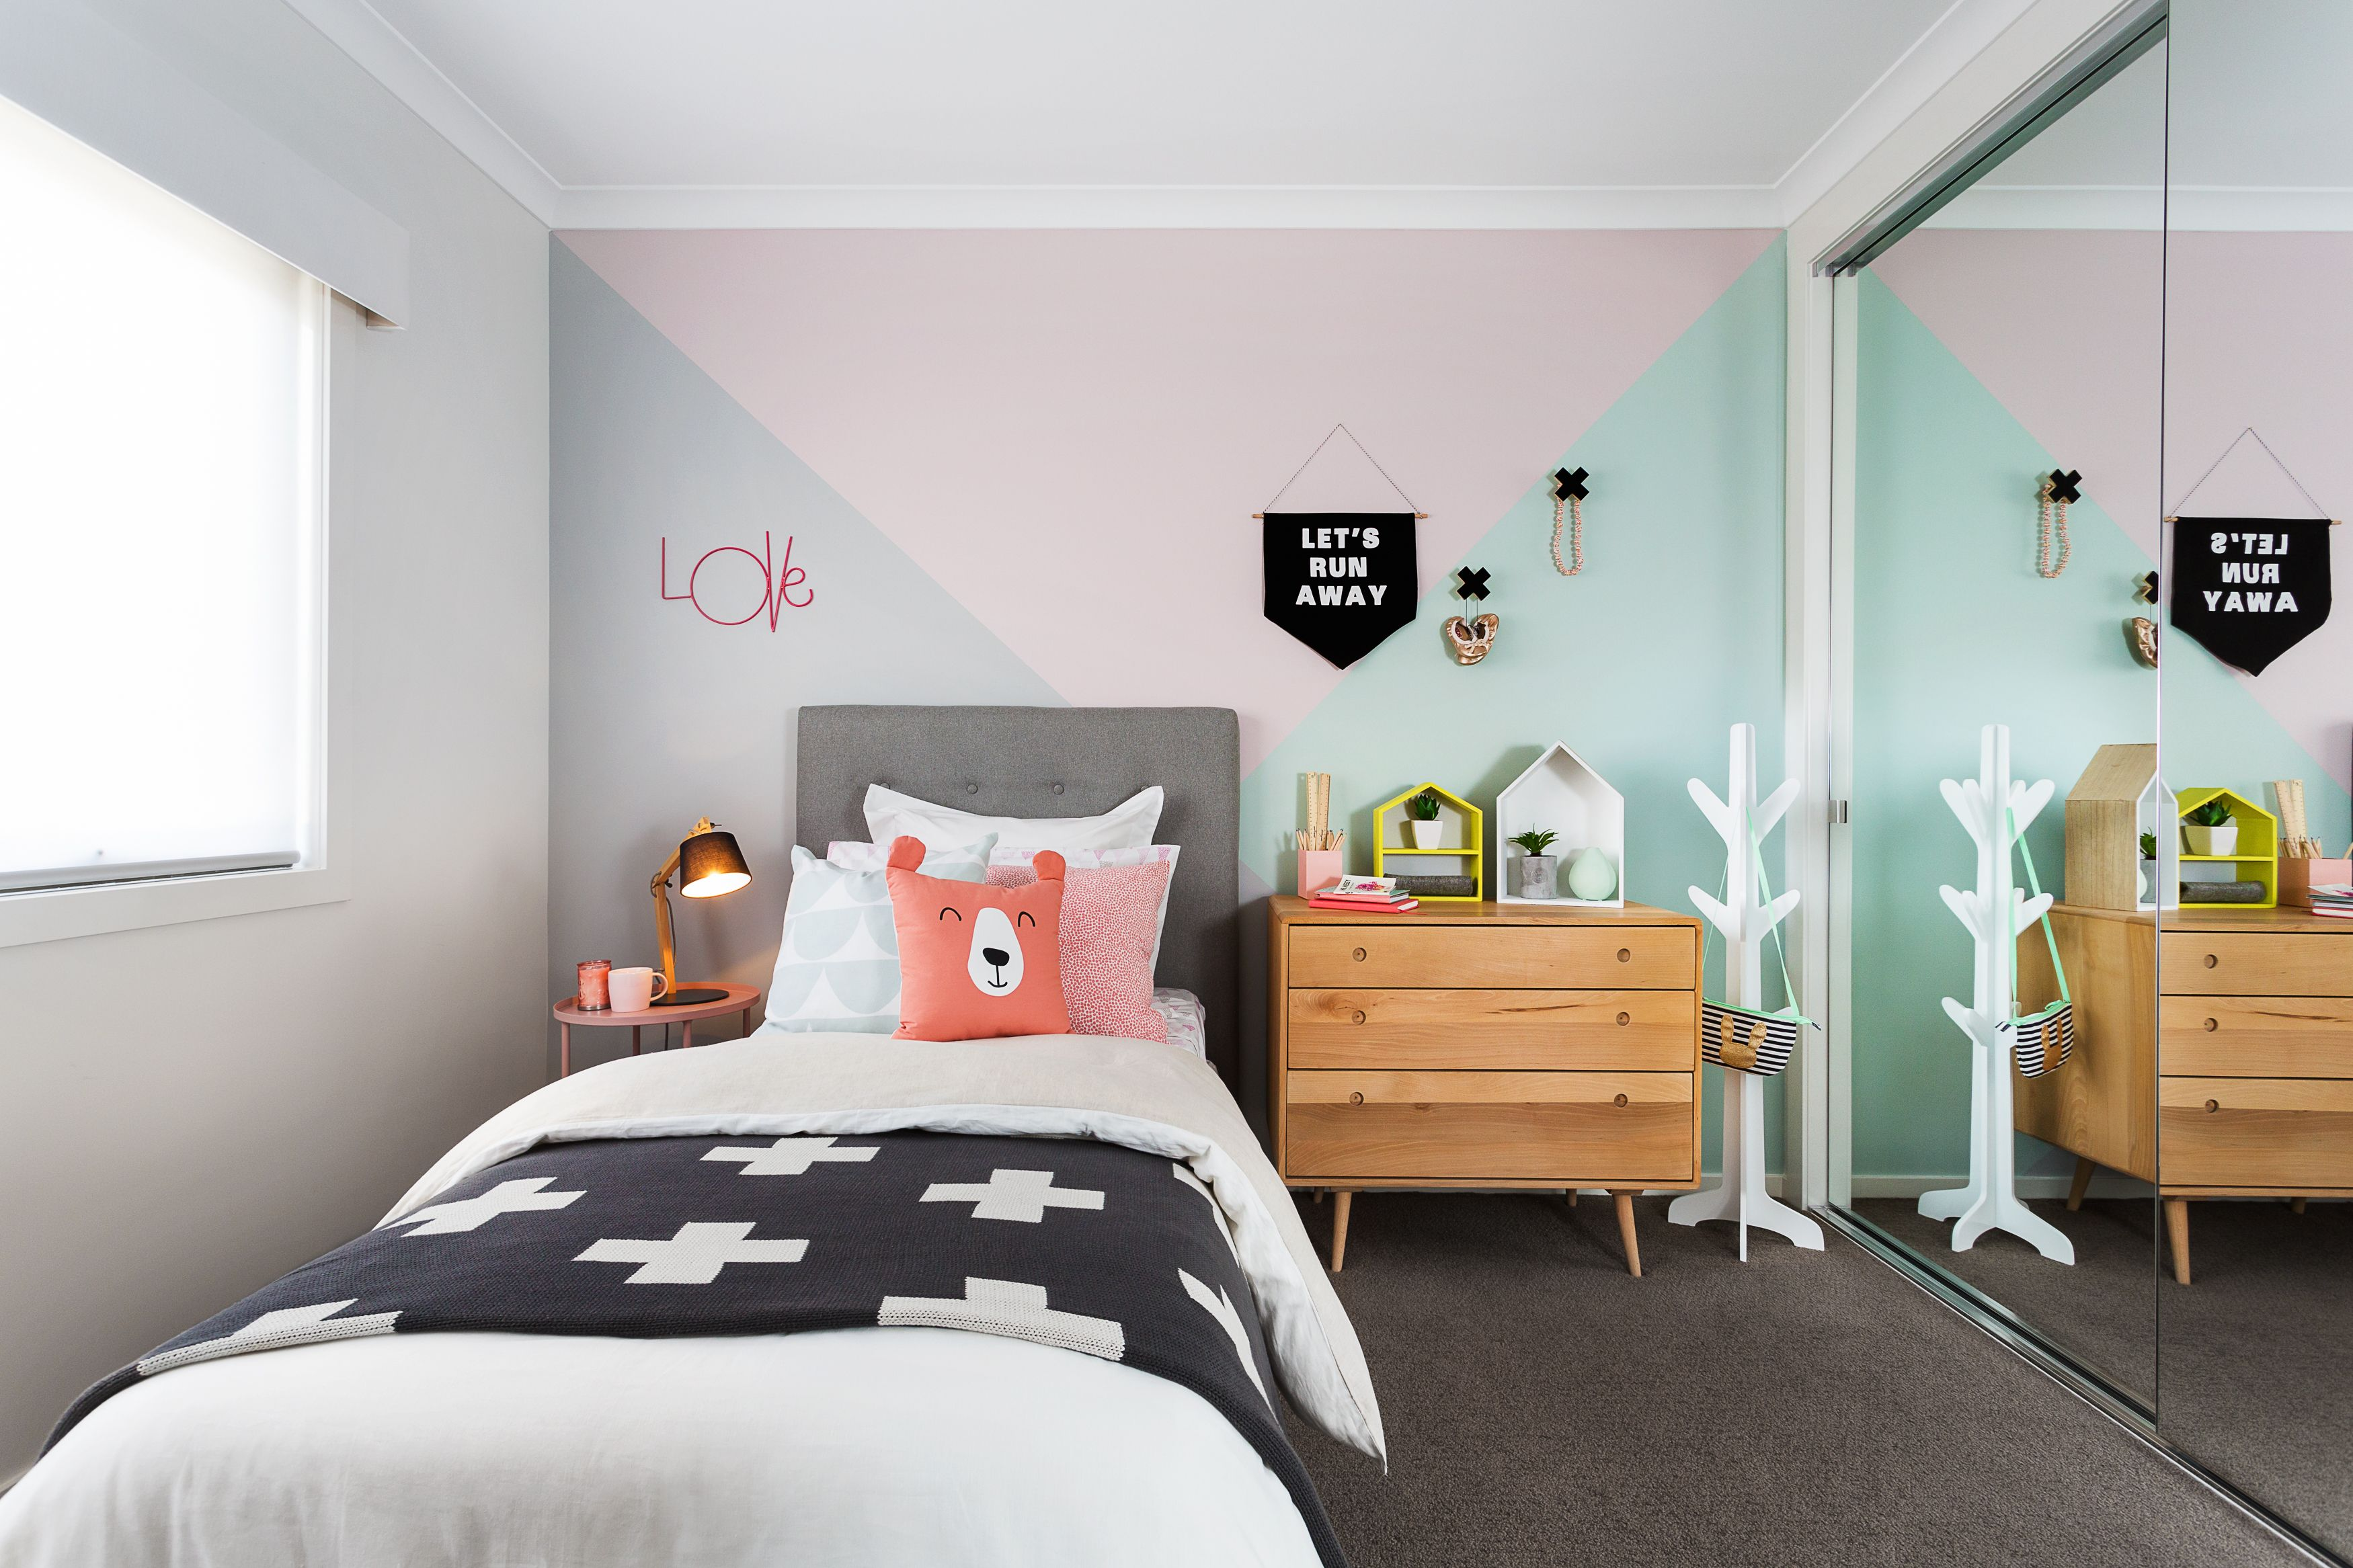 Childrens Bedroom Minerals Is The Perfect Theme If You Want To Have Some Fun Decorating It S All Abou Childrens Bedrooms Design Bedroom Colors Pastel Bedroom